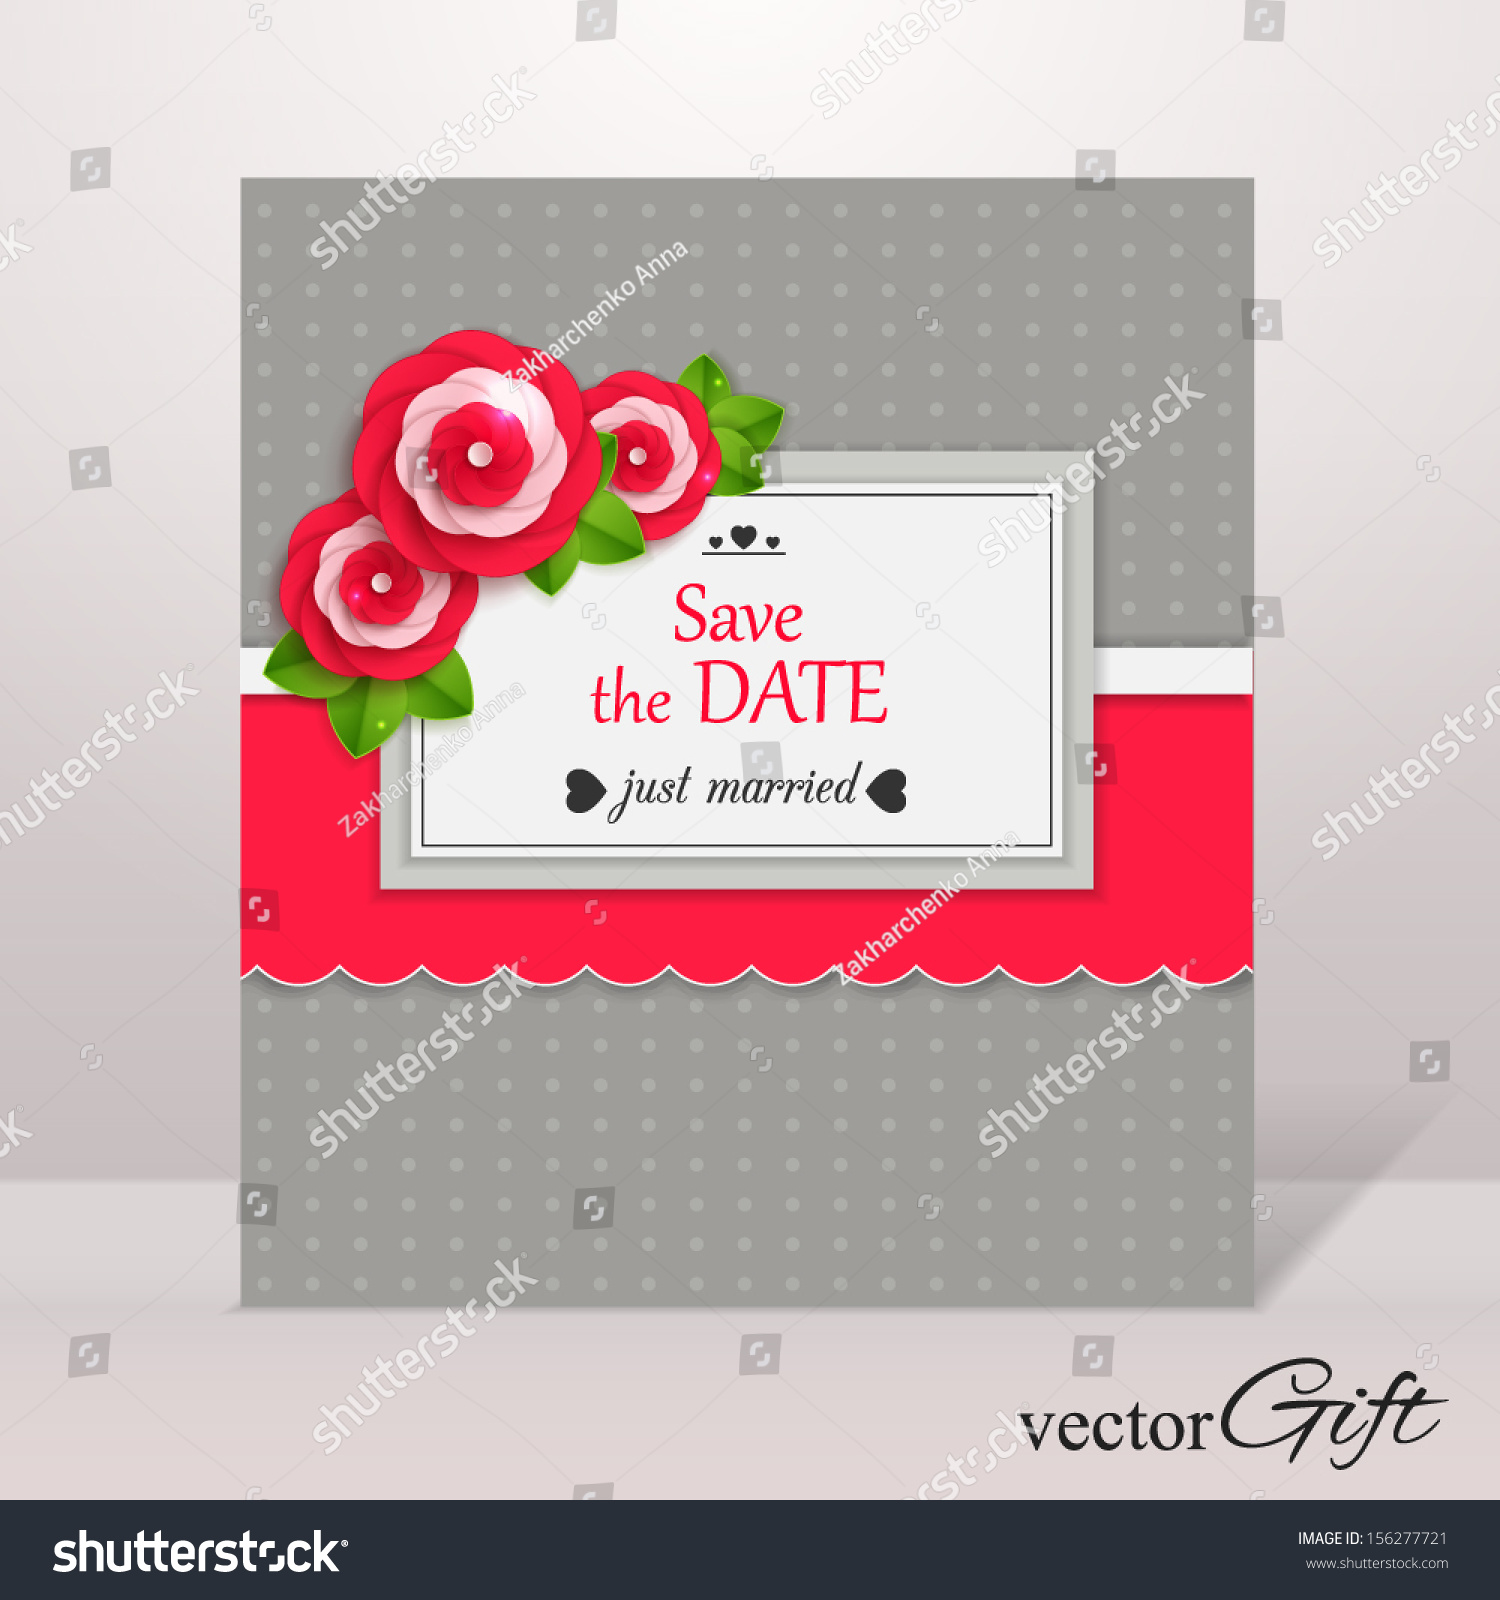 Save Date Flyer Template Paper Flowers Stock Vector - Save the date flyer template